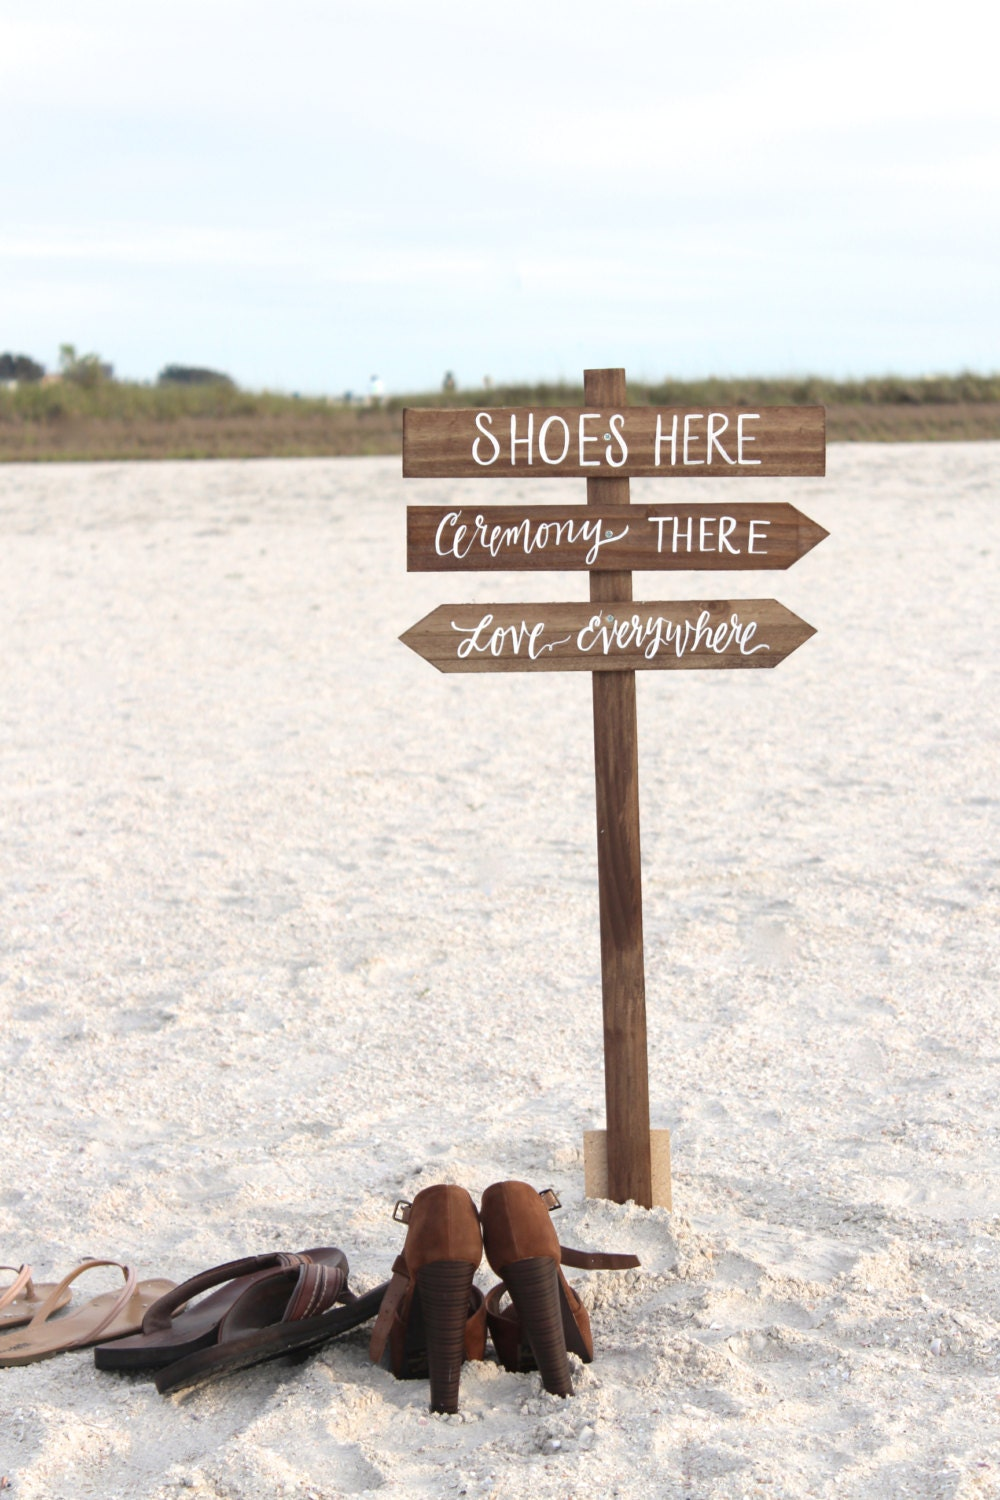 Shoes Here Vows There Love Everywhere Sign, 3 Signs, Piece Set, Rustic Wedding Signs, 3 Beach Wedding Signs, Beach Weddings, Outdoor Directional Sign 972864